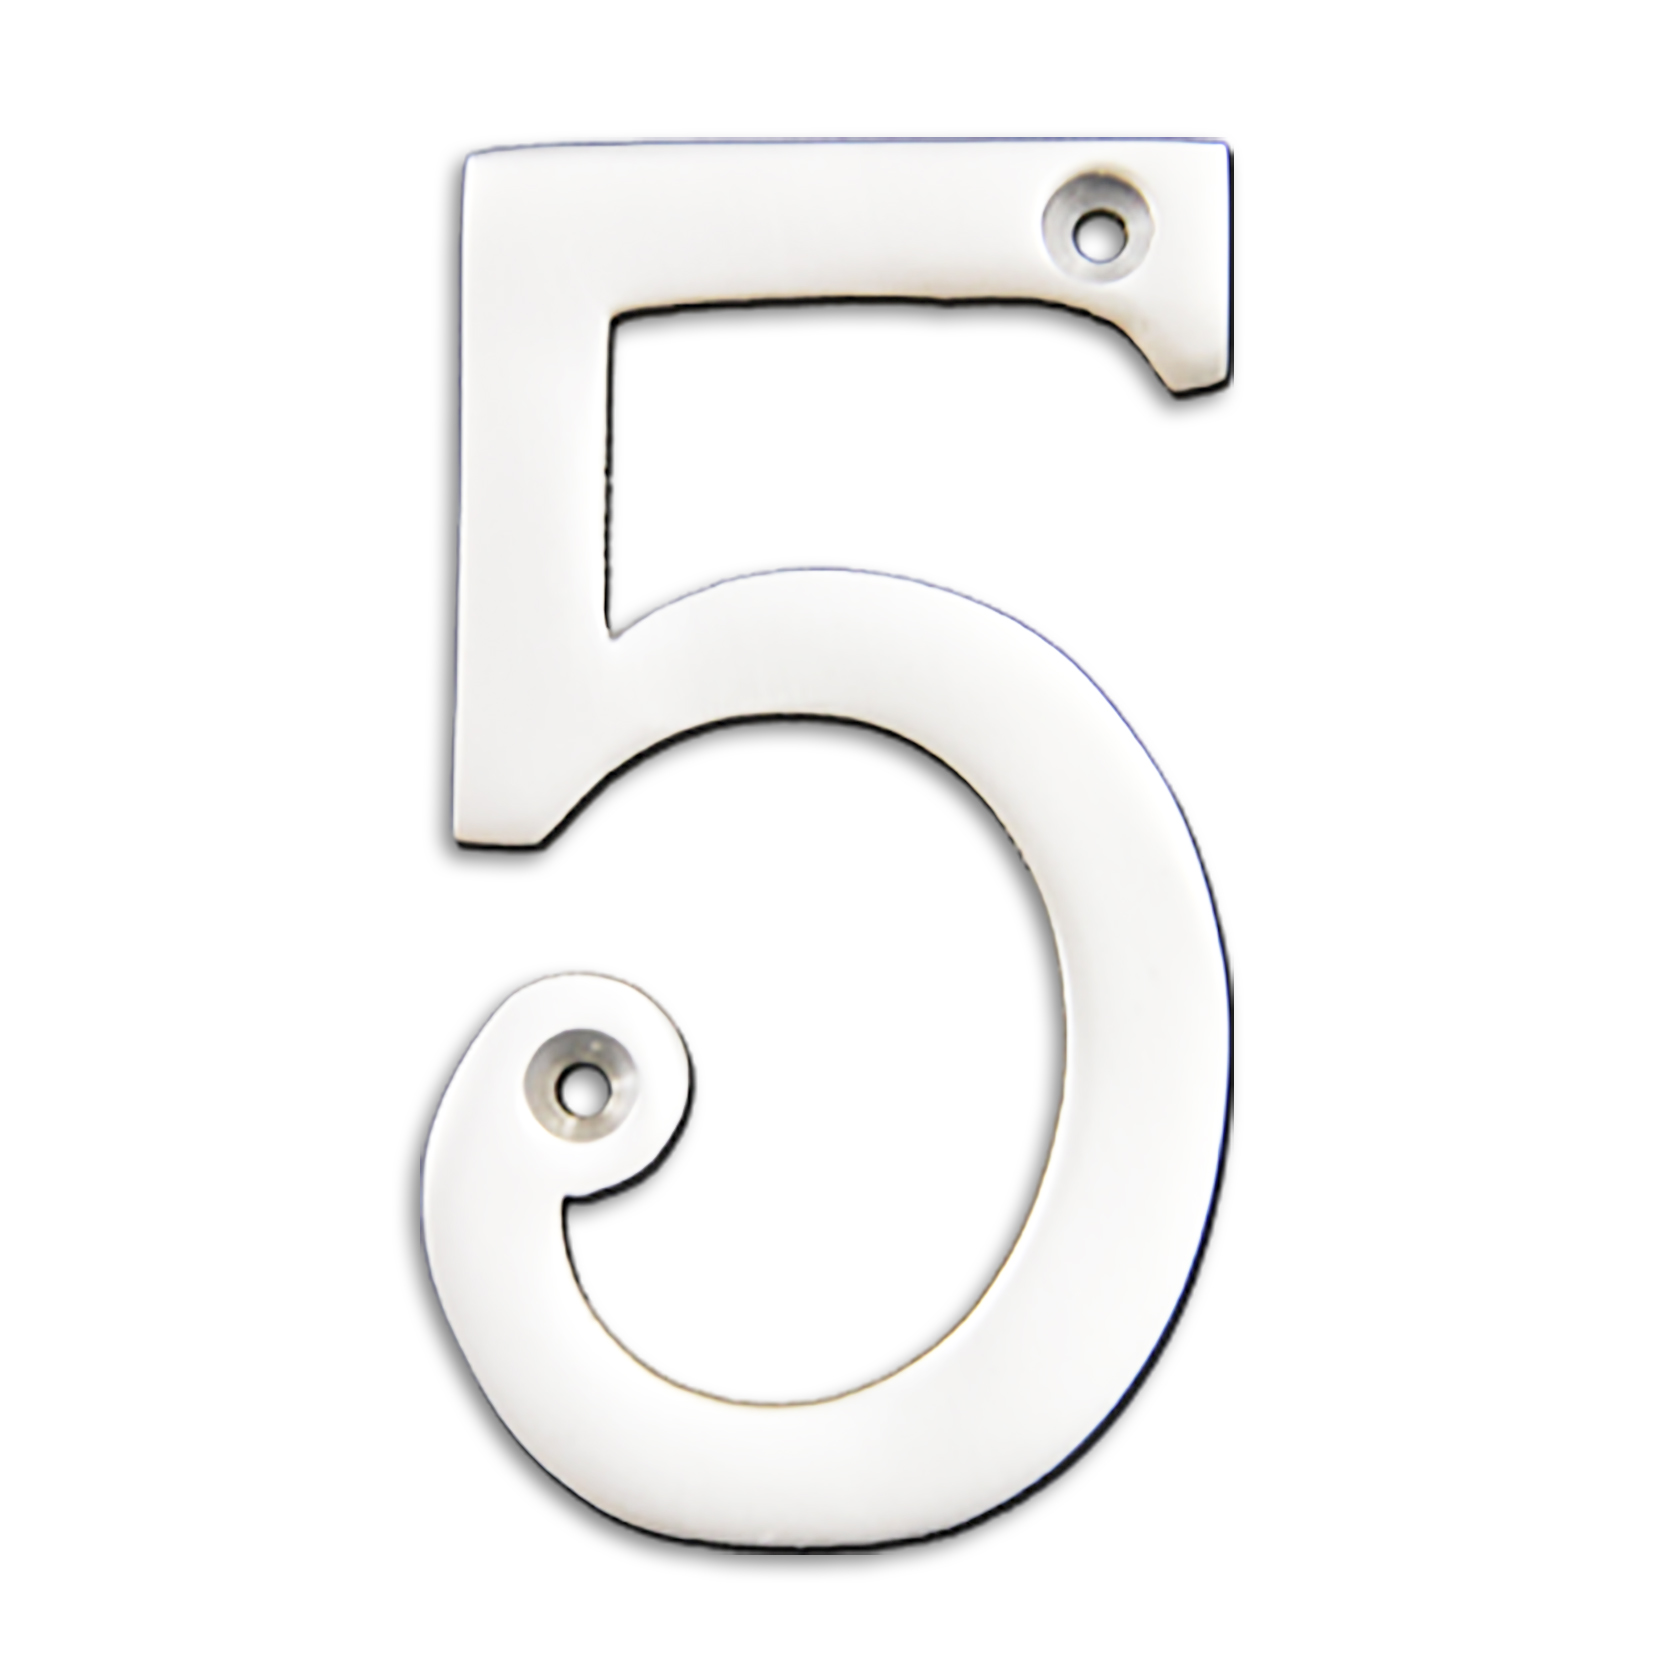 4-inch brass metal house number in polished chrome finish - metal number 5